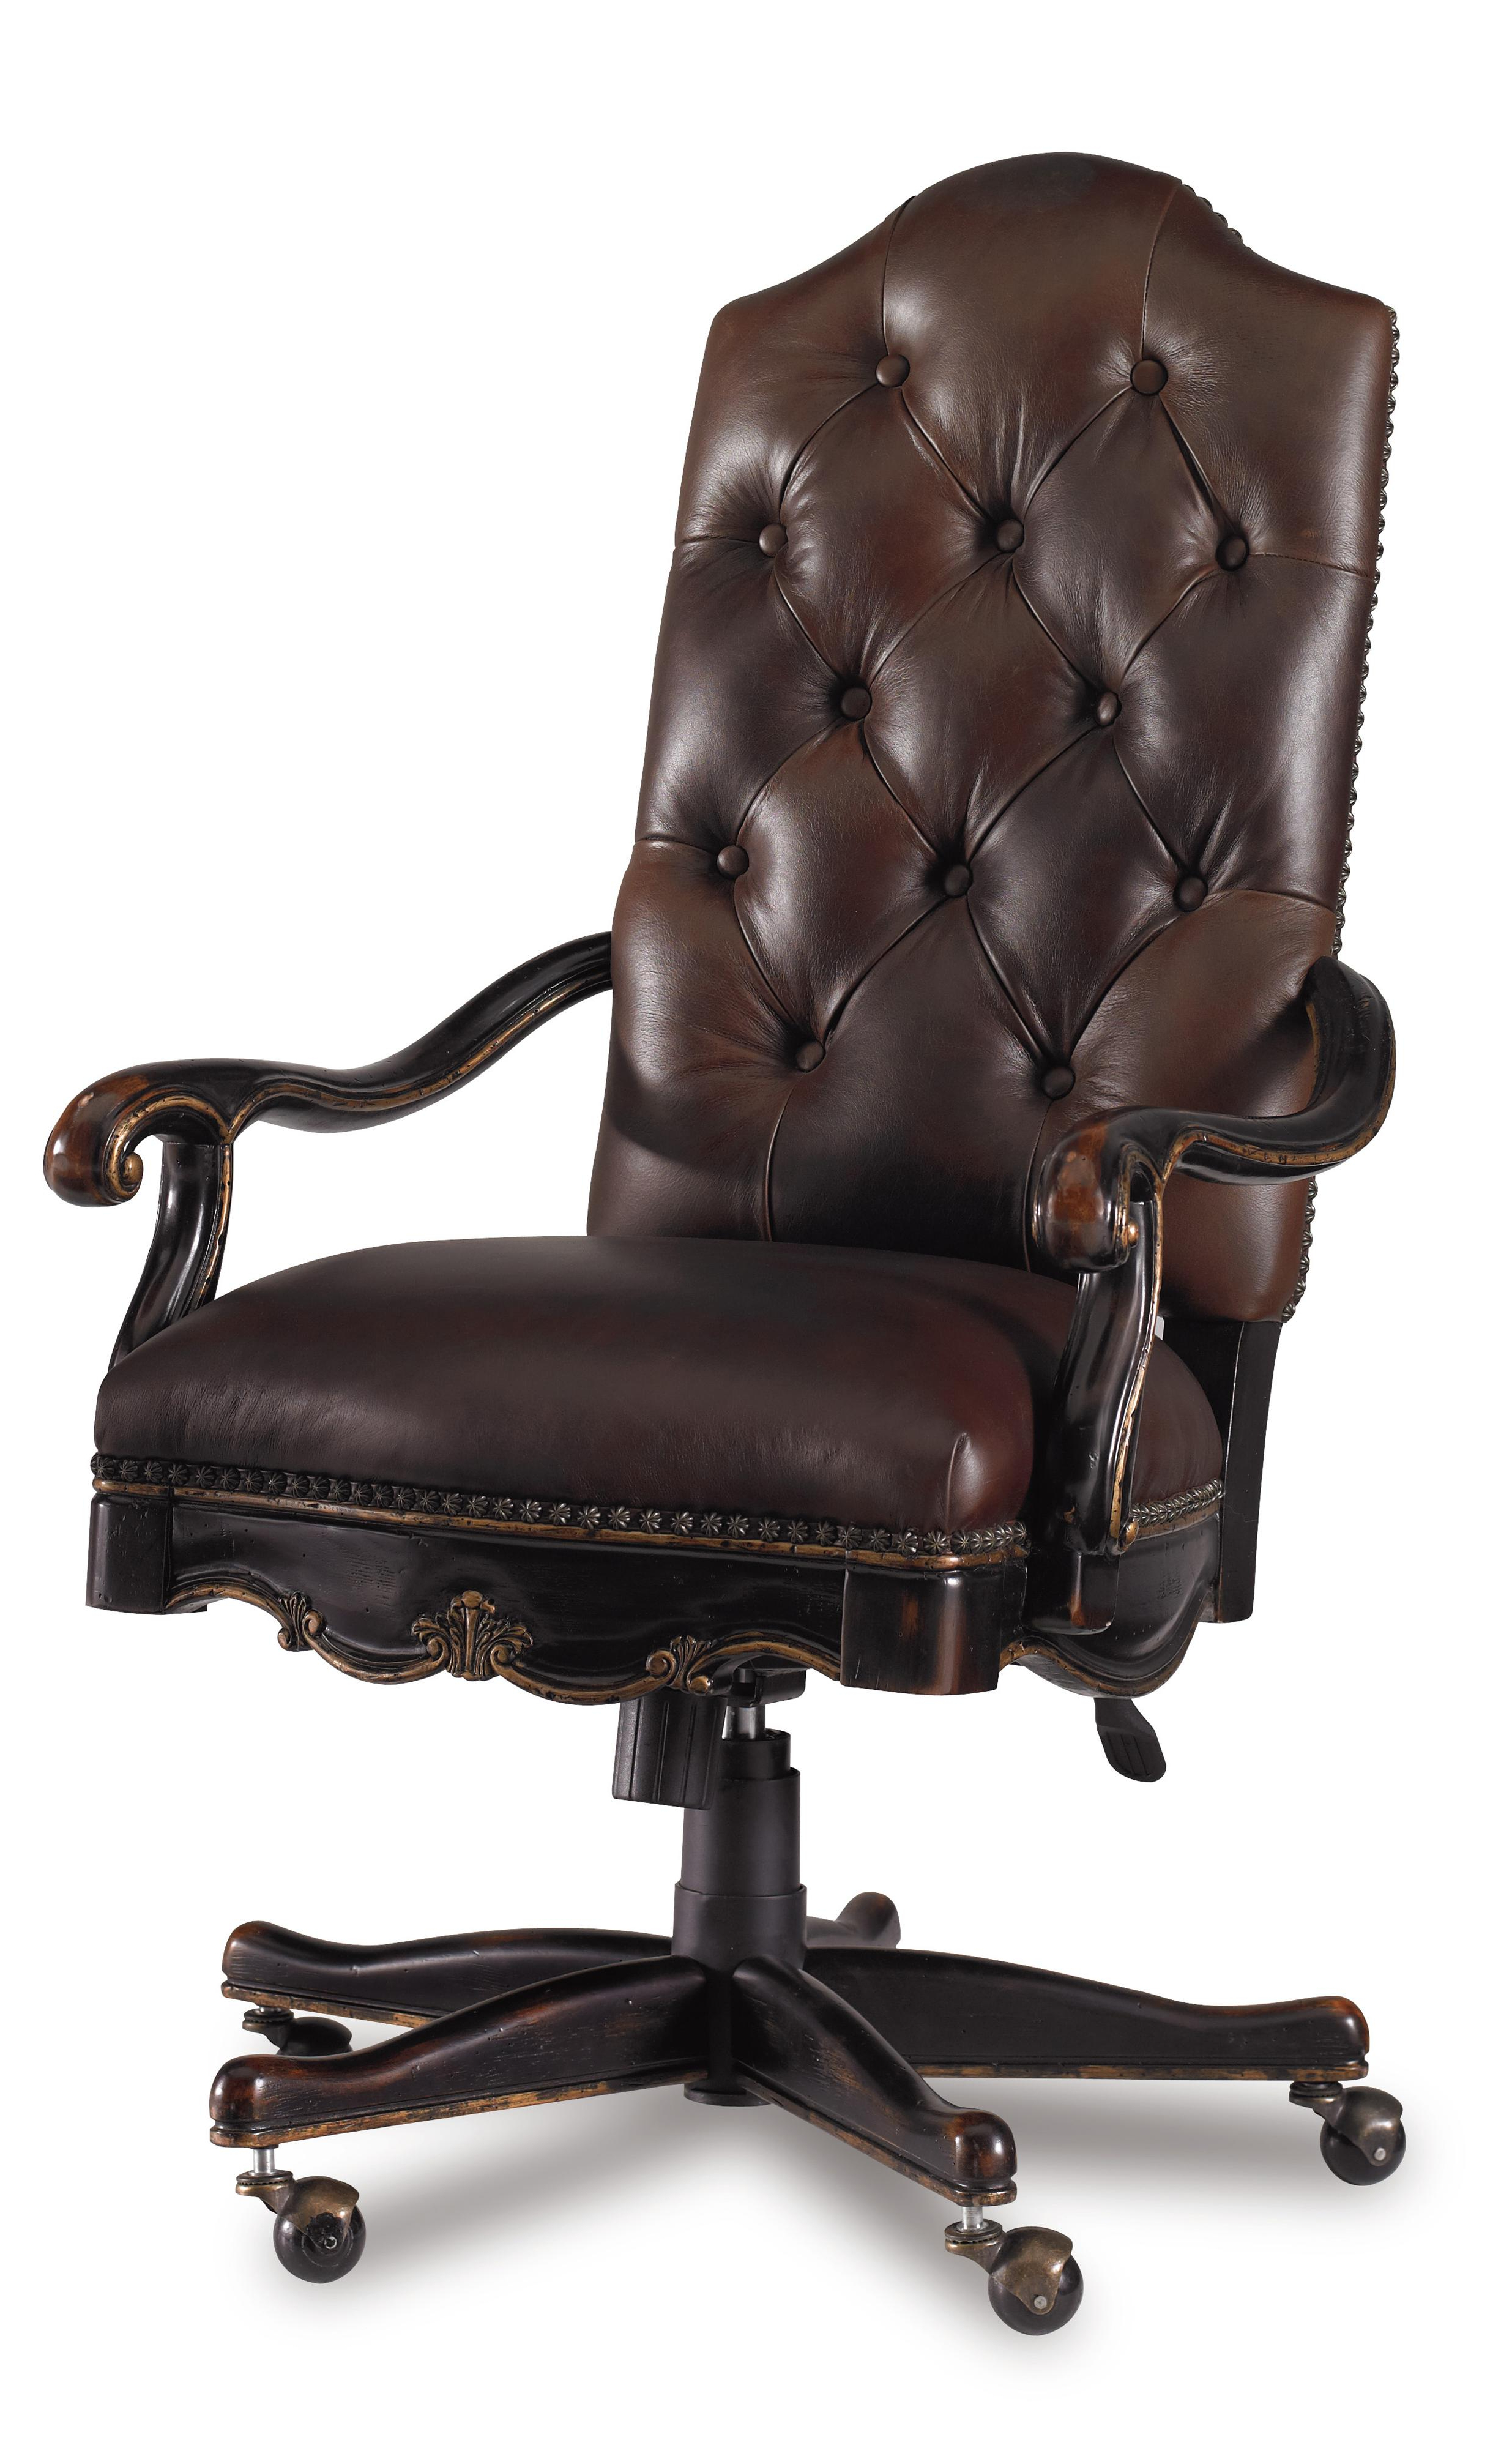 Most Popular Chocolate Brown Leather Tufted Swivel Chairs Pertaining To Hooker Furniture Grandover Tufted Leather Executive Office Chair (View 14 of 20)